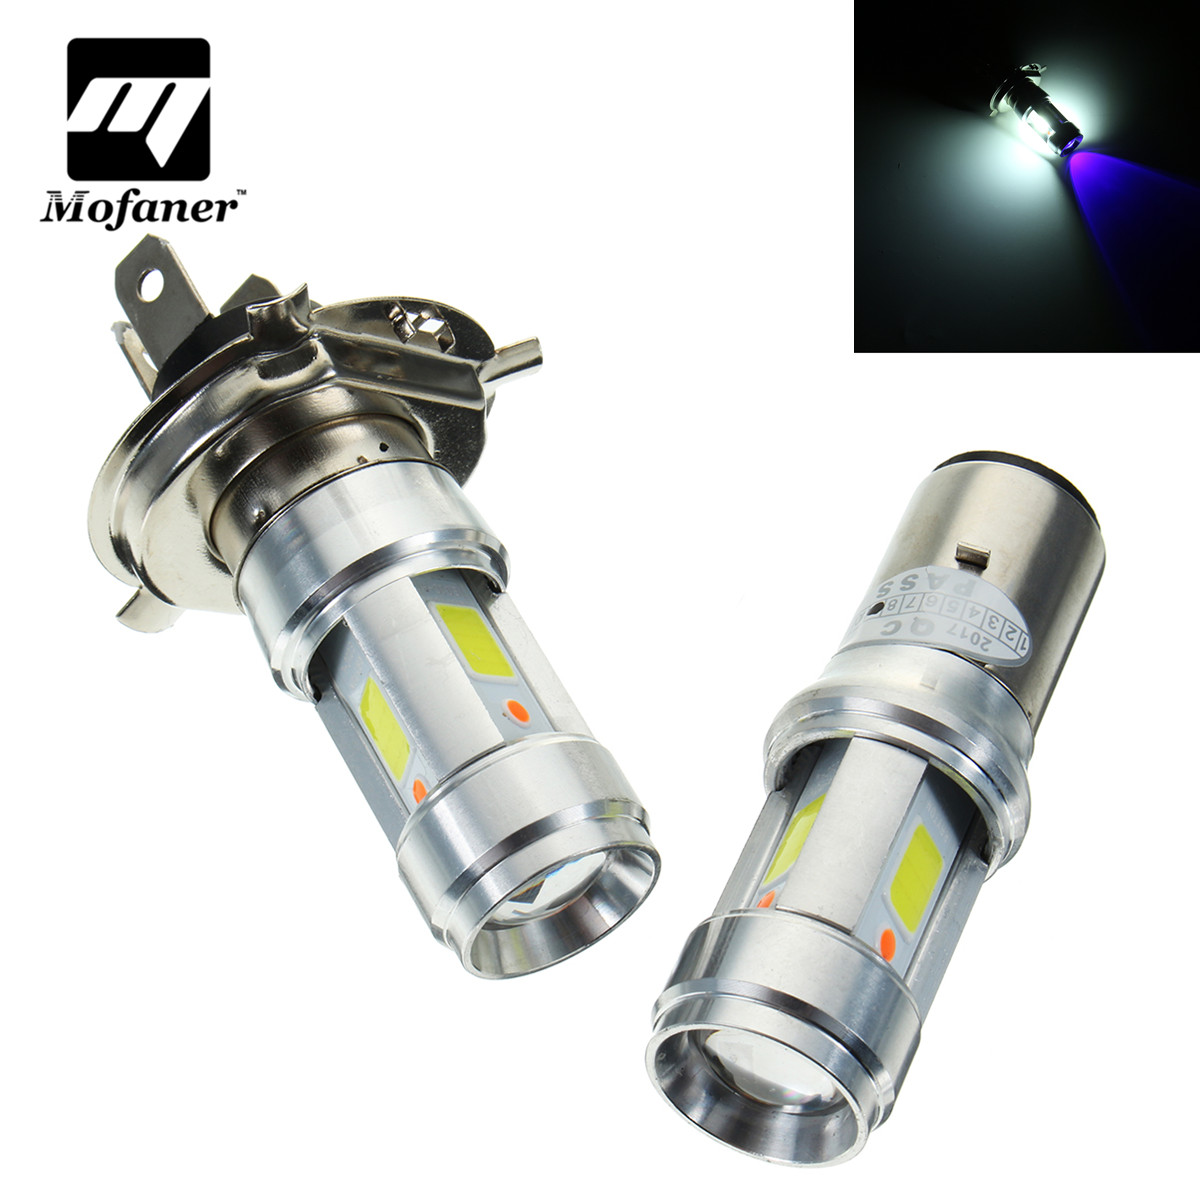 Aluminium Alloy B20D H4 Scooter Motorbike Headlight Bulb 3000LM 18W LED Motorcycle Head Light Bulbs 6500K High-Low Beam Headlamp motorcycle h4 hs1 led headlight bulb h l hi lo high low dual motorbike motocross light kit headlamp scooter atv moto head lamp